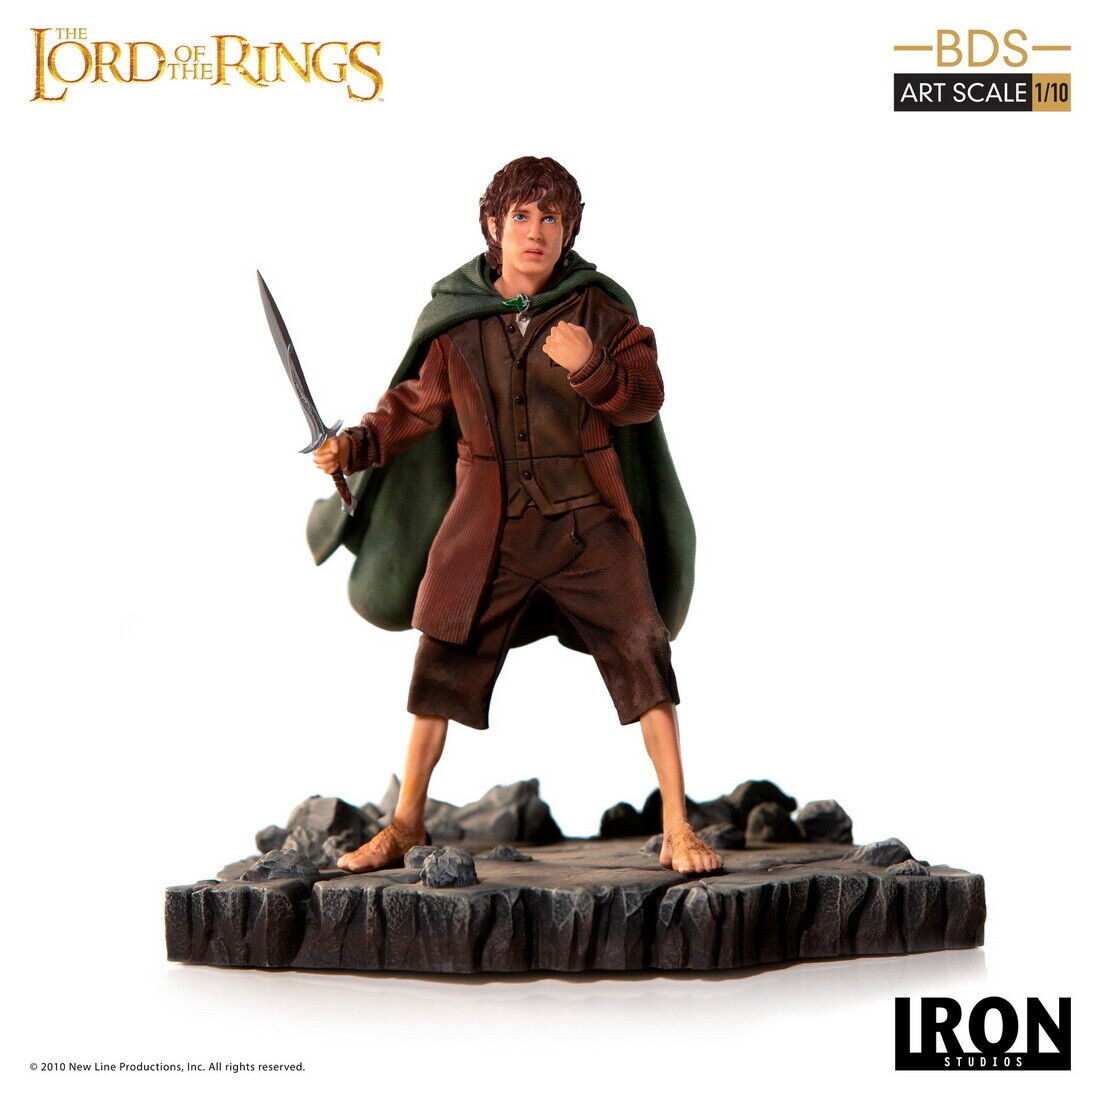 Iron Studios Lord of the Rings Hobbits Frodo Baggins BDS Art Scale 1/10 Statue on eBay thumbnail